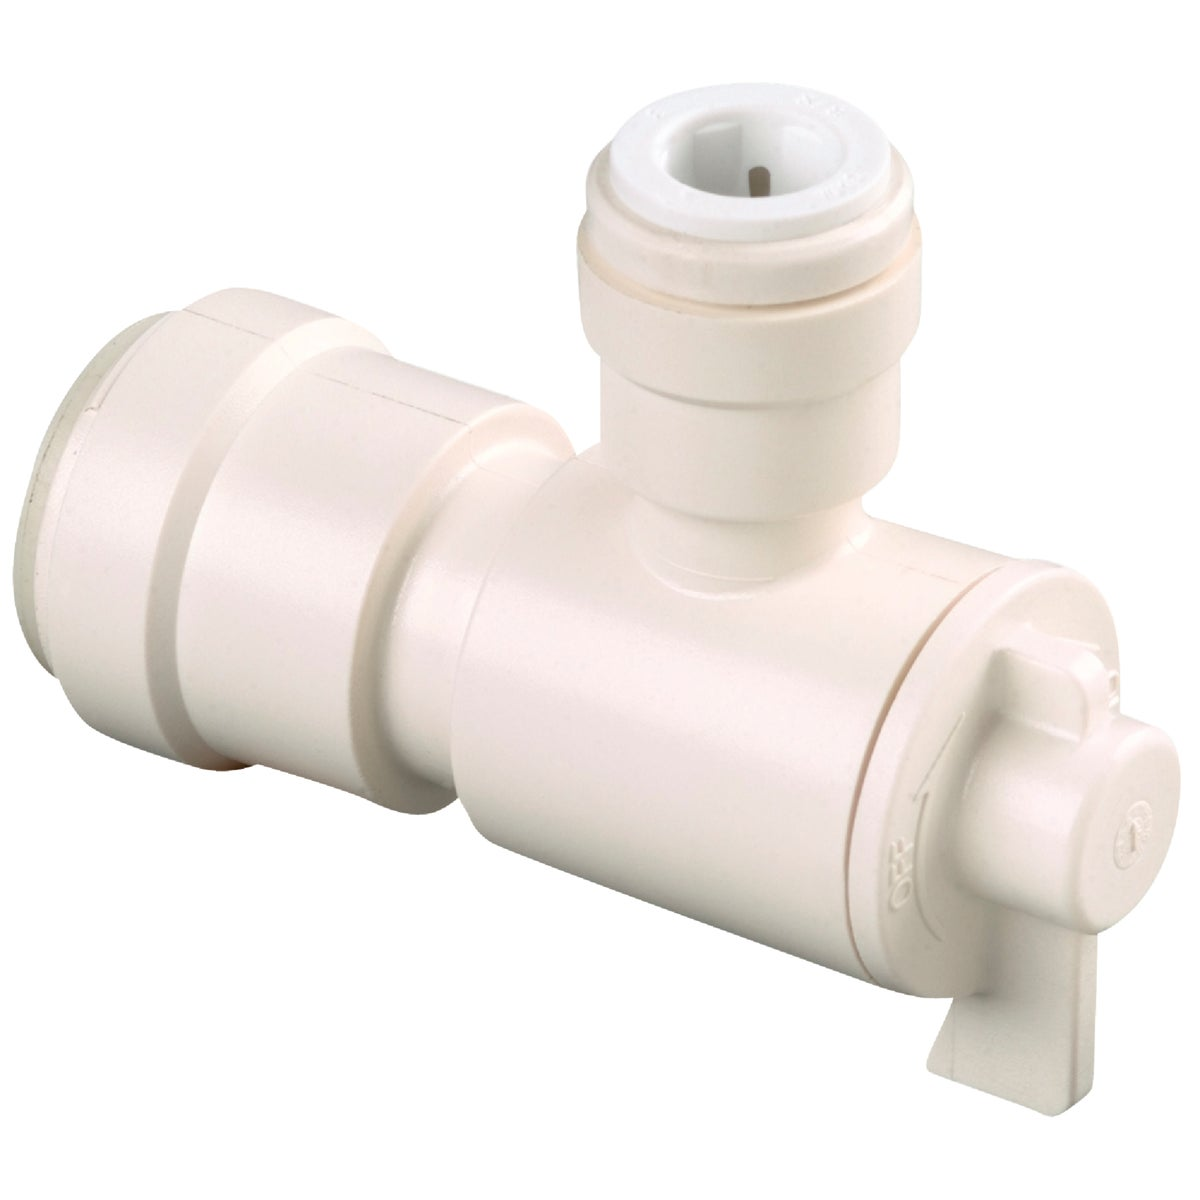 1/2CTSX3/8OD ANGLE VALVE - P-676 by Watts Pex